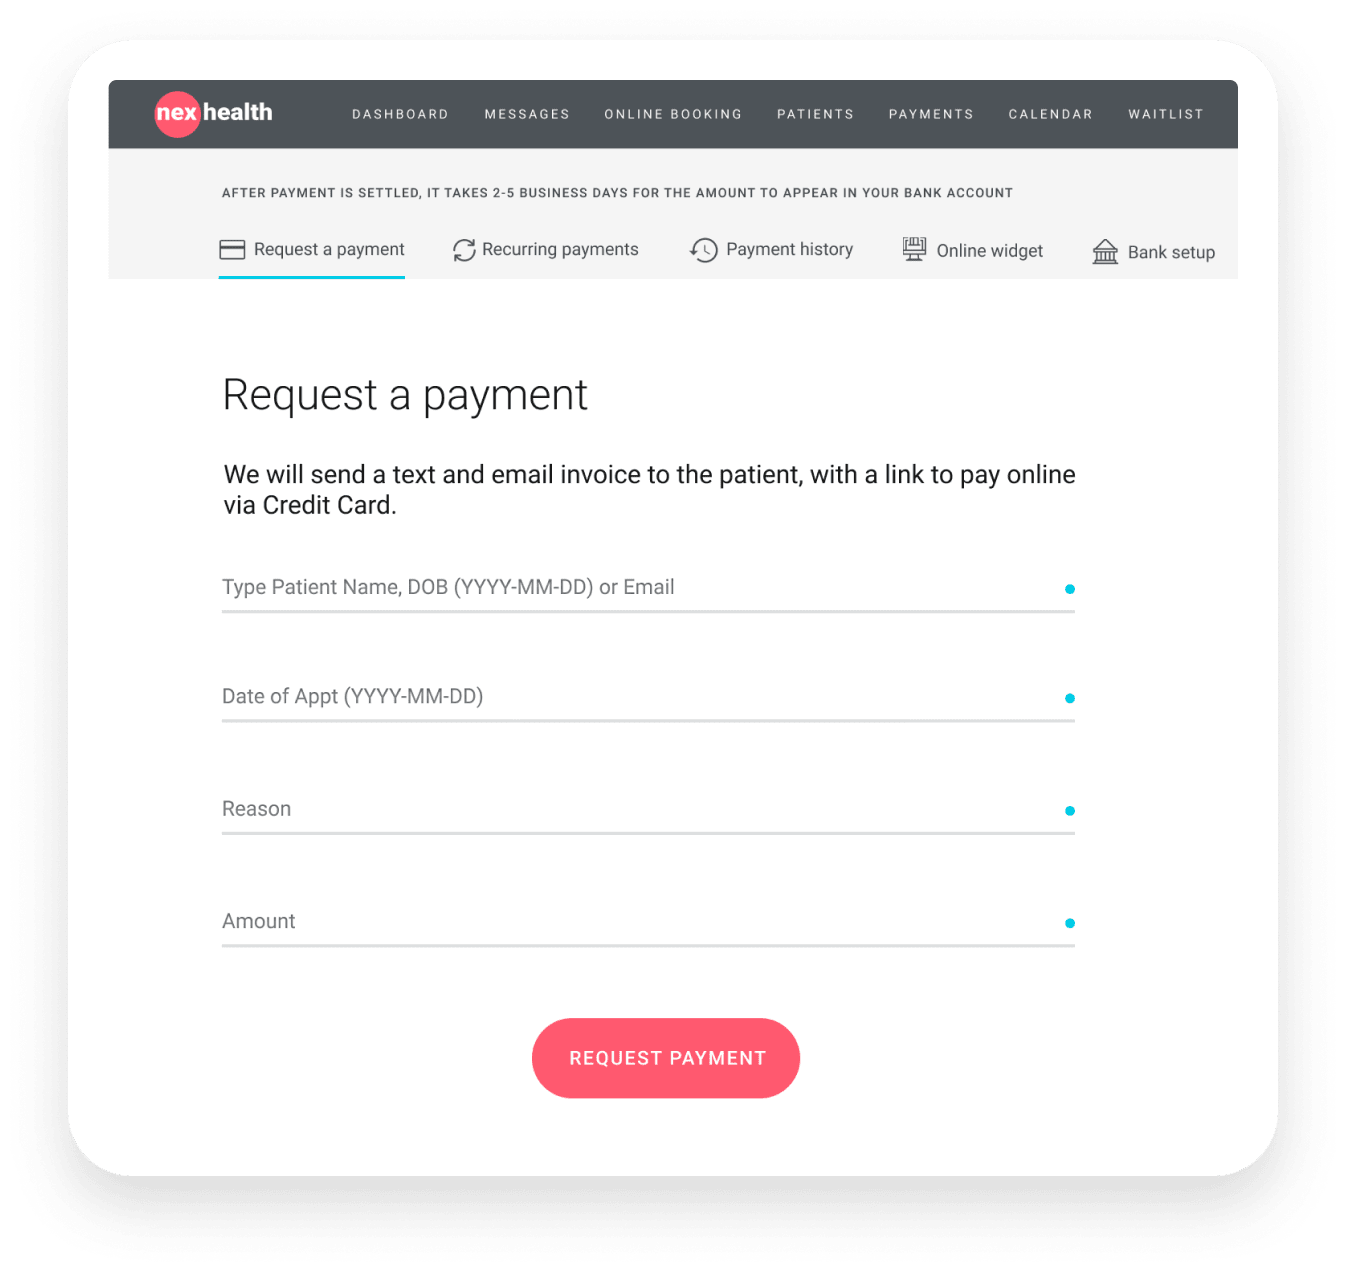 NexHealth Payment Request Form